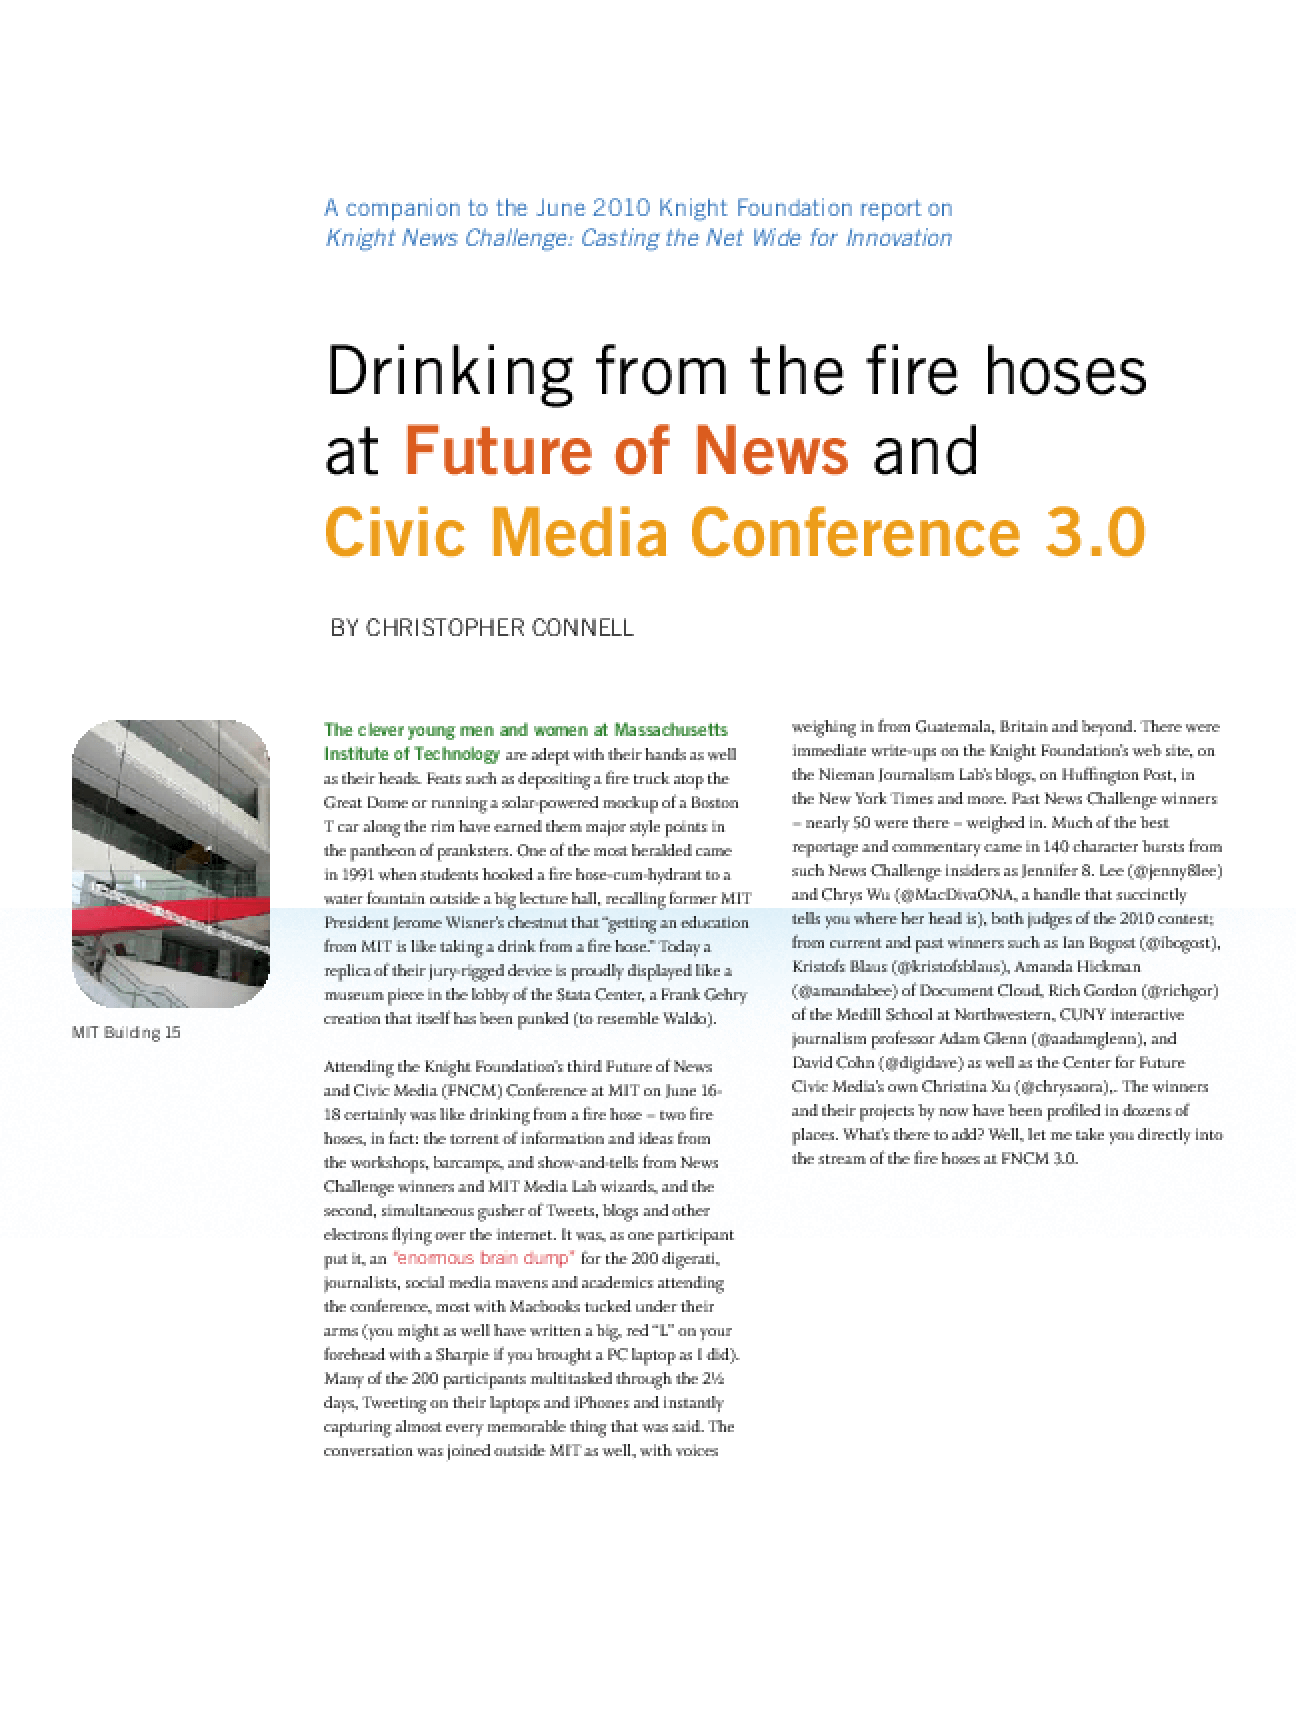 Drinking From the Fire Hoses at Future of News and Civic Media Conference 3.0